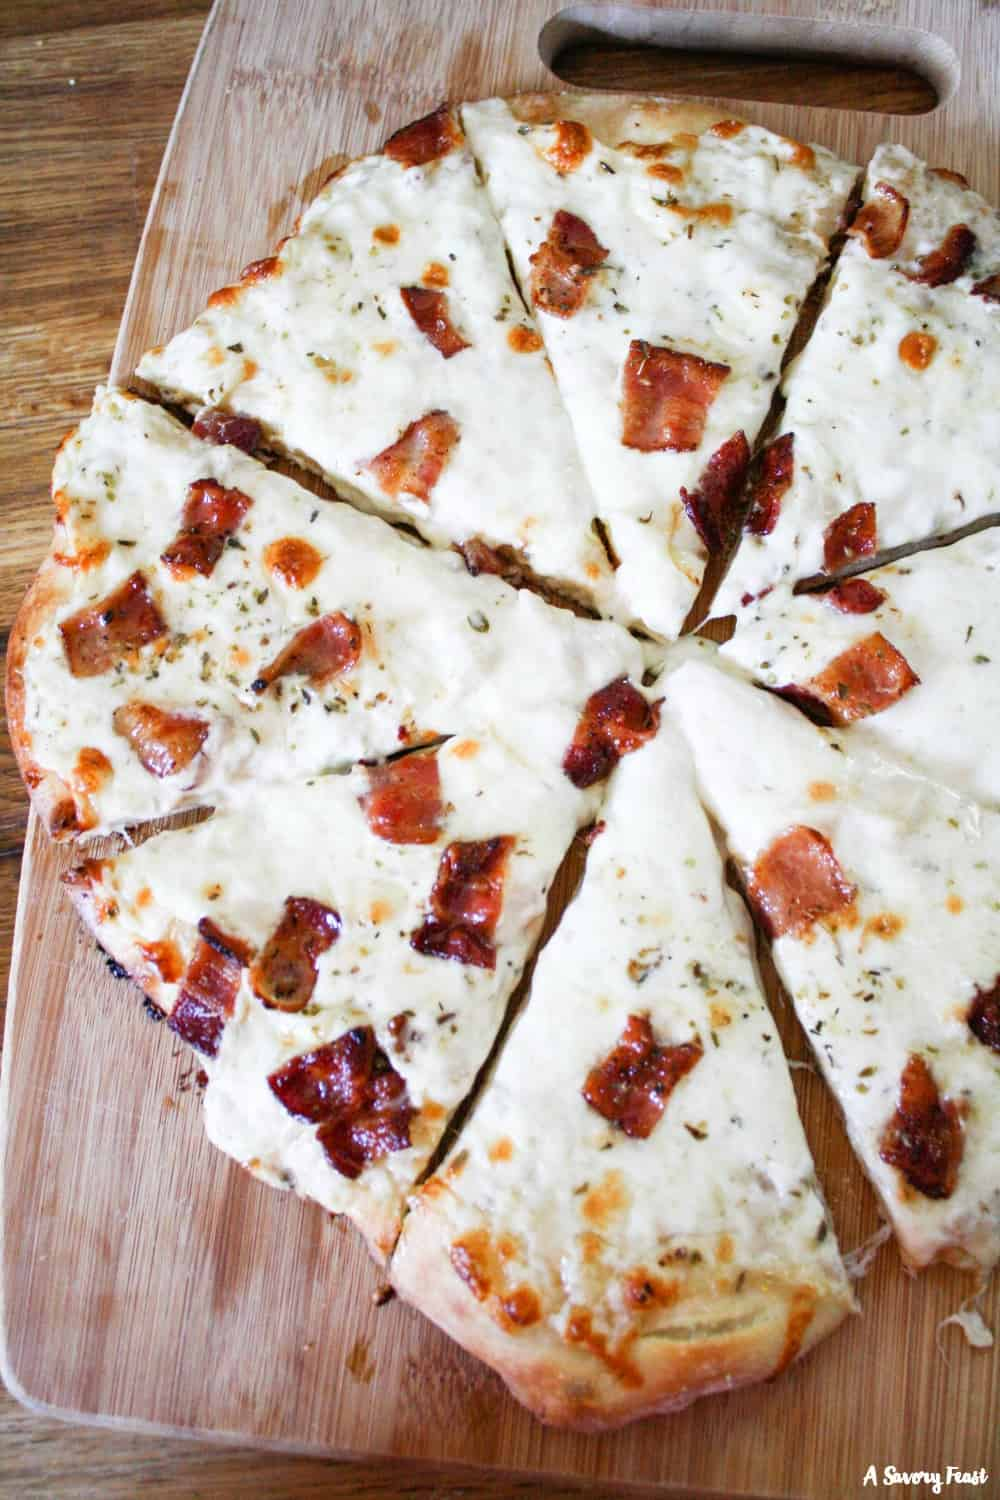 Make it a homemade pizza night with this Bacon Alfredo Pizza! Use your favorite pizza dough and top with alfredo sauce, mozzarella cheese and bacon.